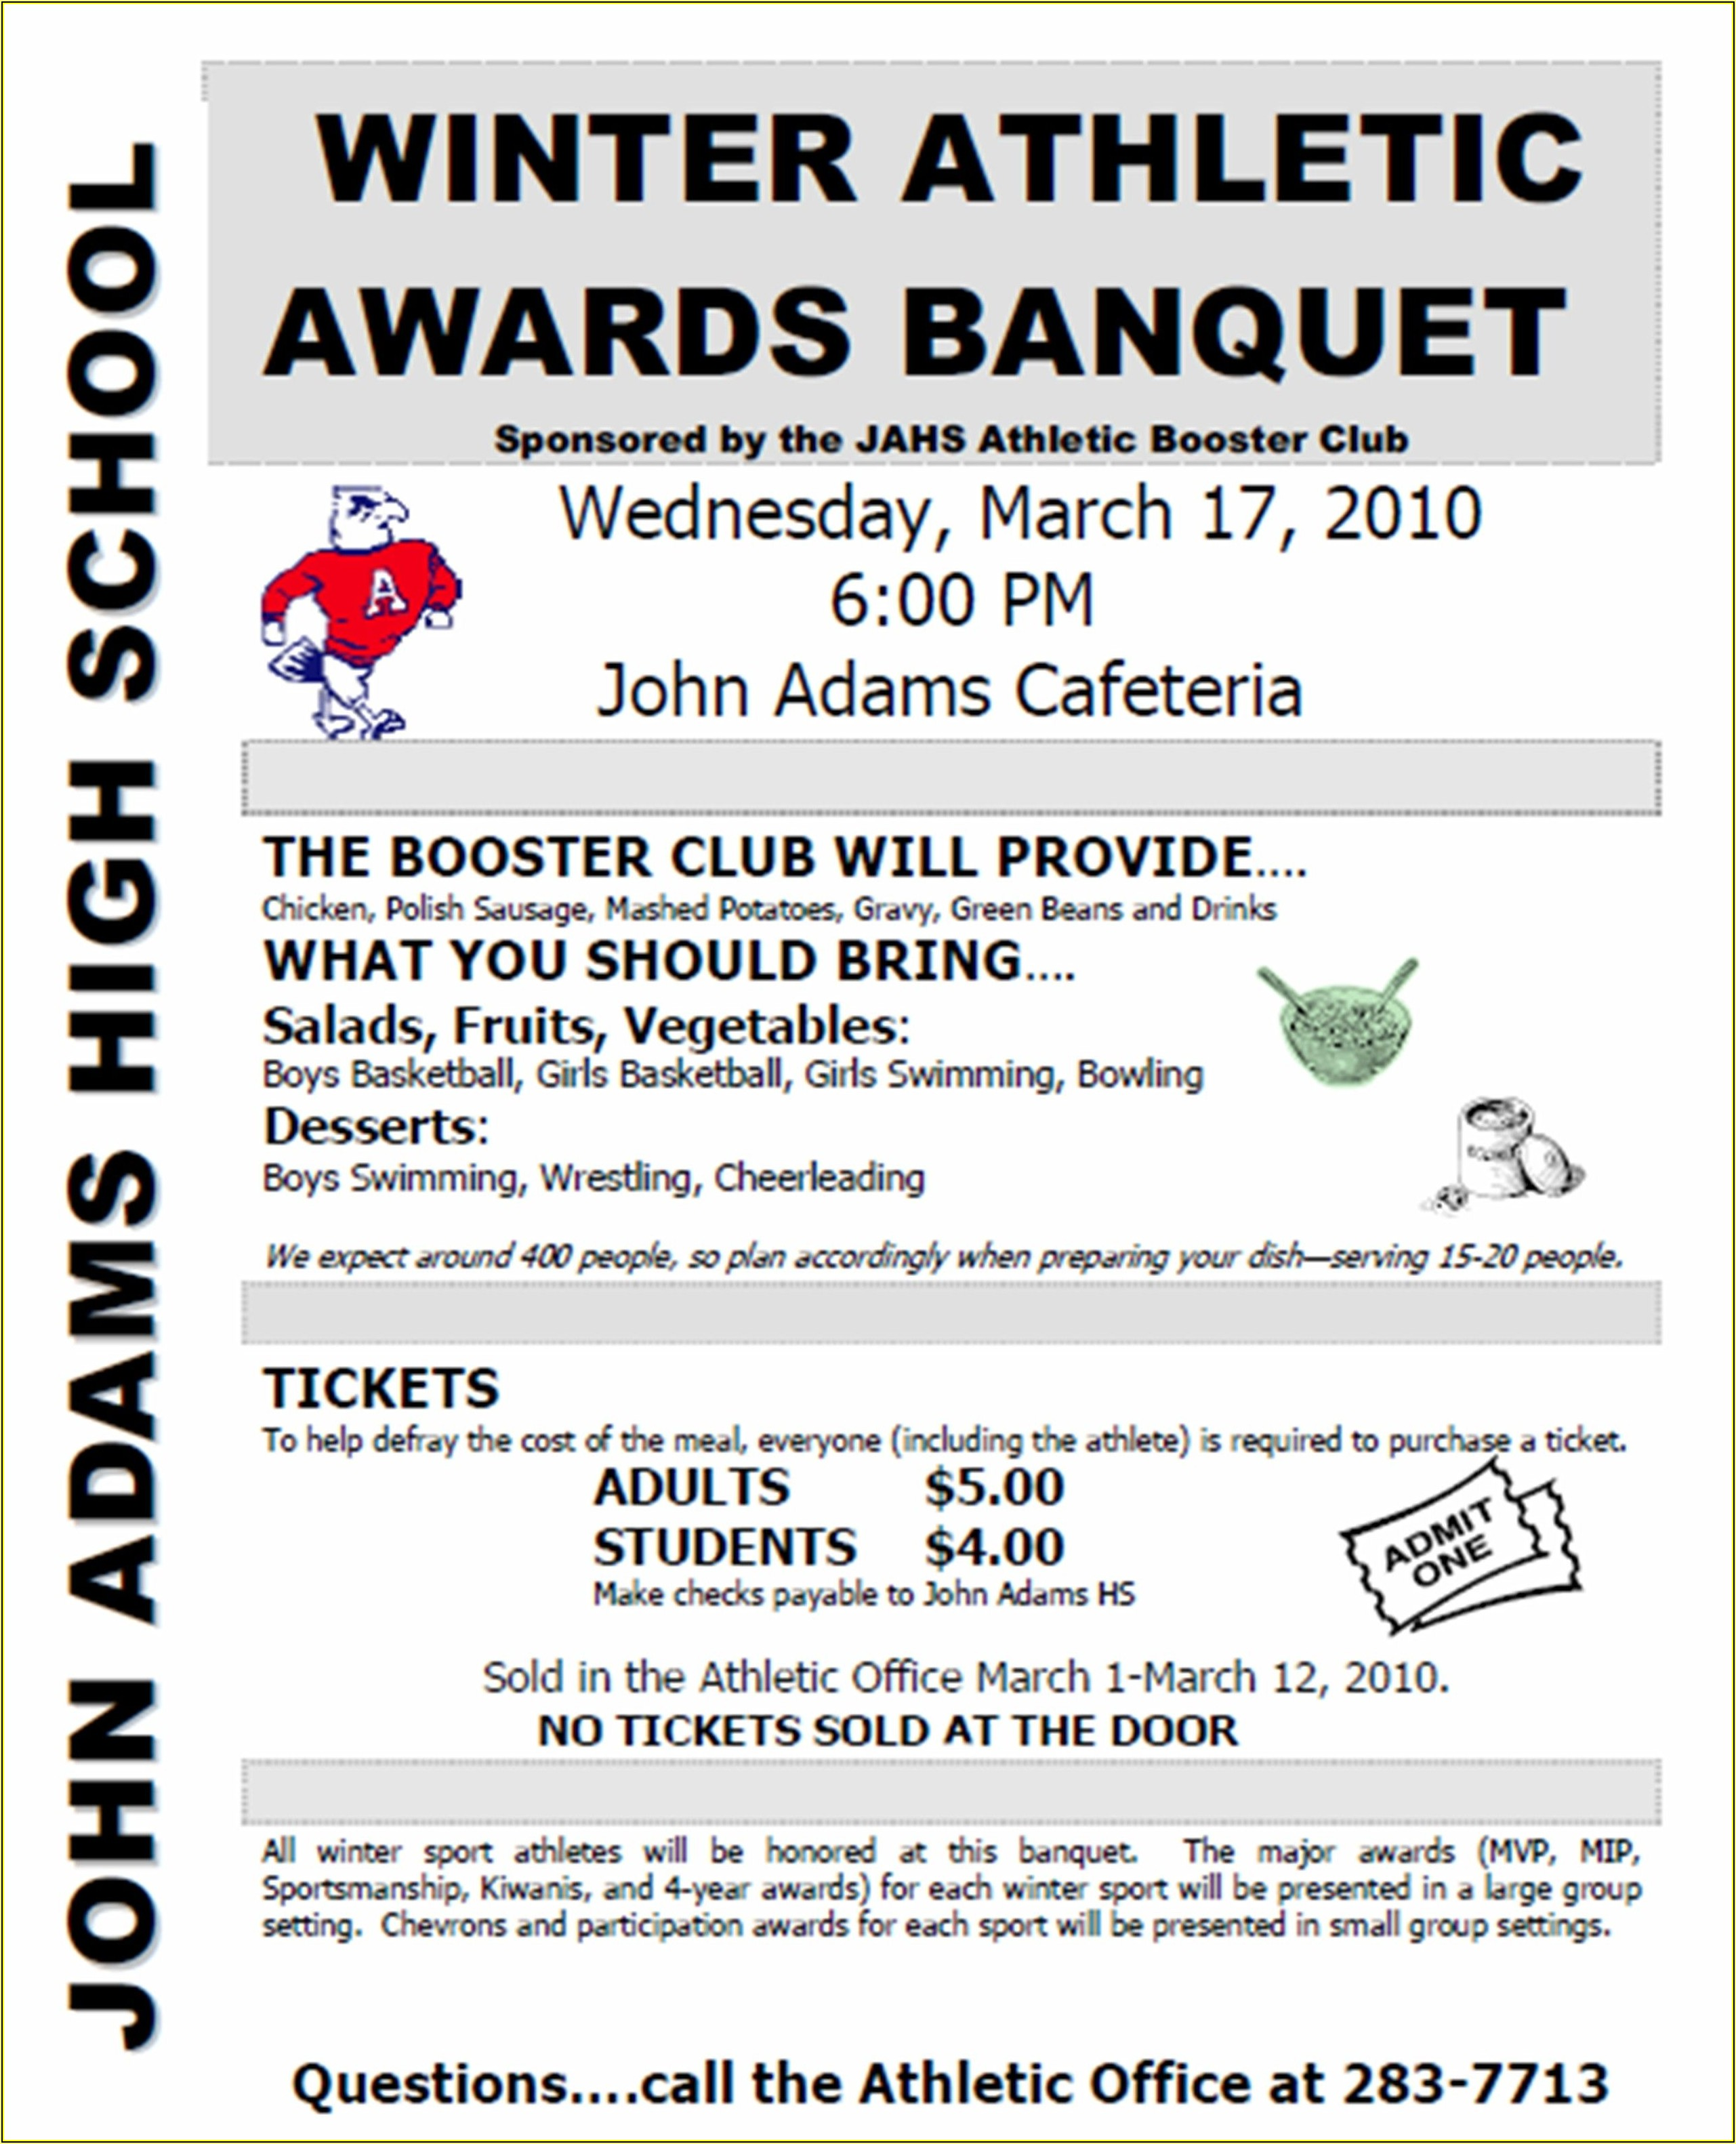 Football Banquet Invitation Template Free